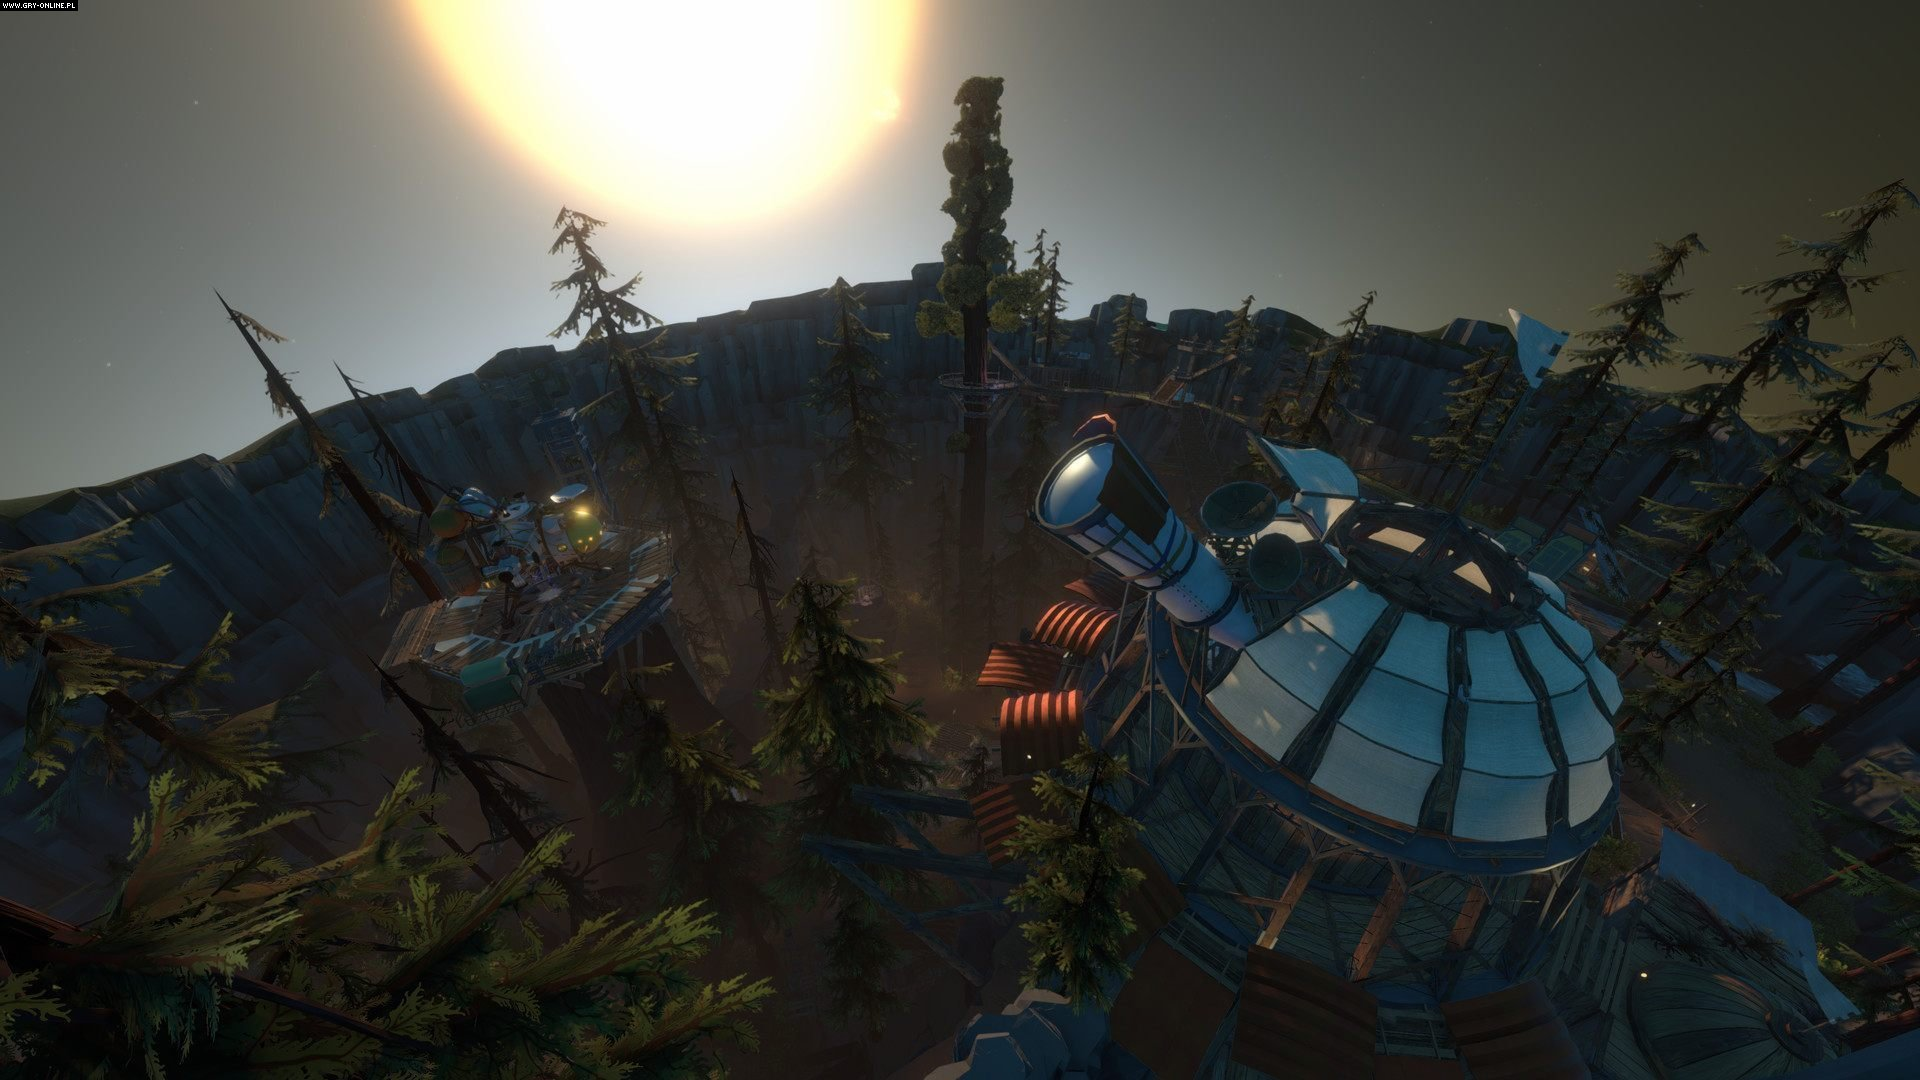 Outer Wilds PC, PS4, XONE Games Image 2/5, Mobius Digital, Annapurna Interactive